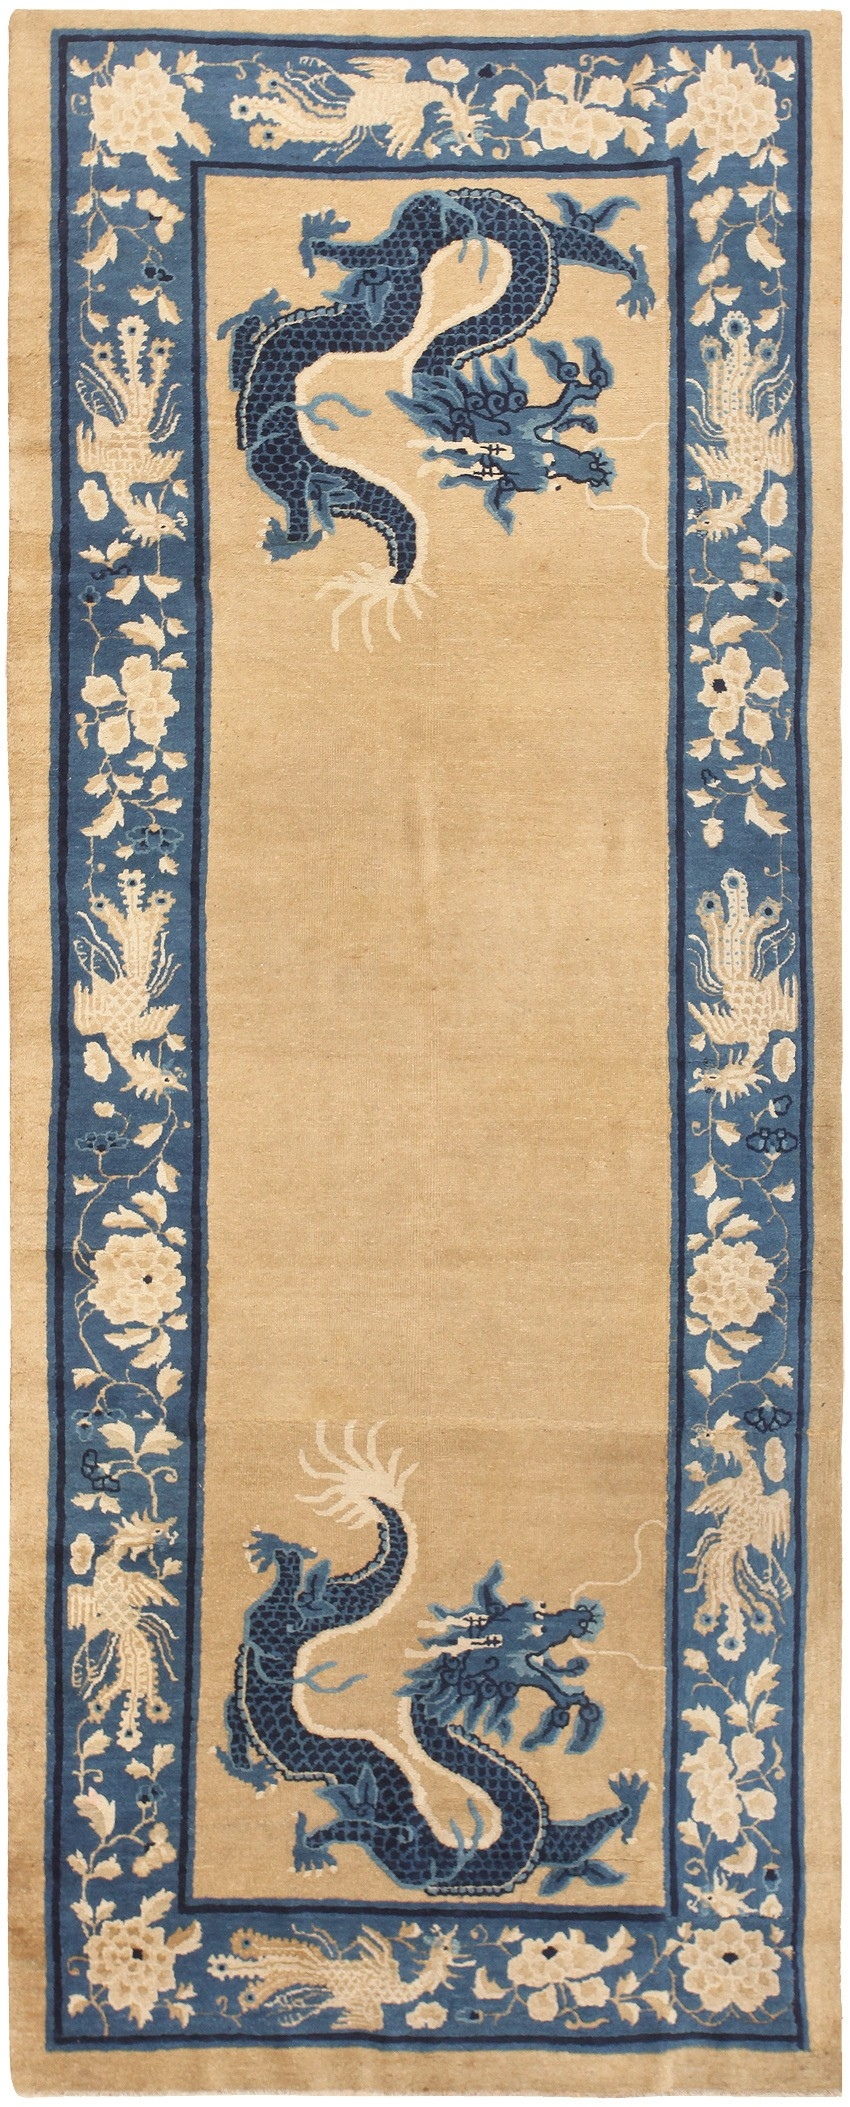 Chinese Rug Antique Chinese Carpet From Nazmiyal Collection Nyc With Regard To Chinese Rugs (View 4 of 15)